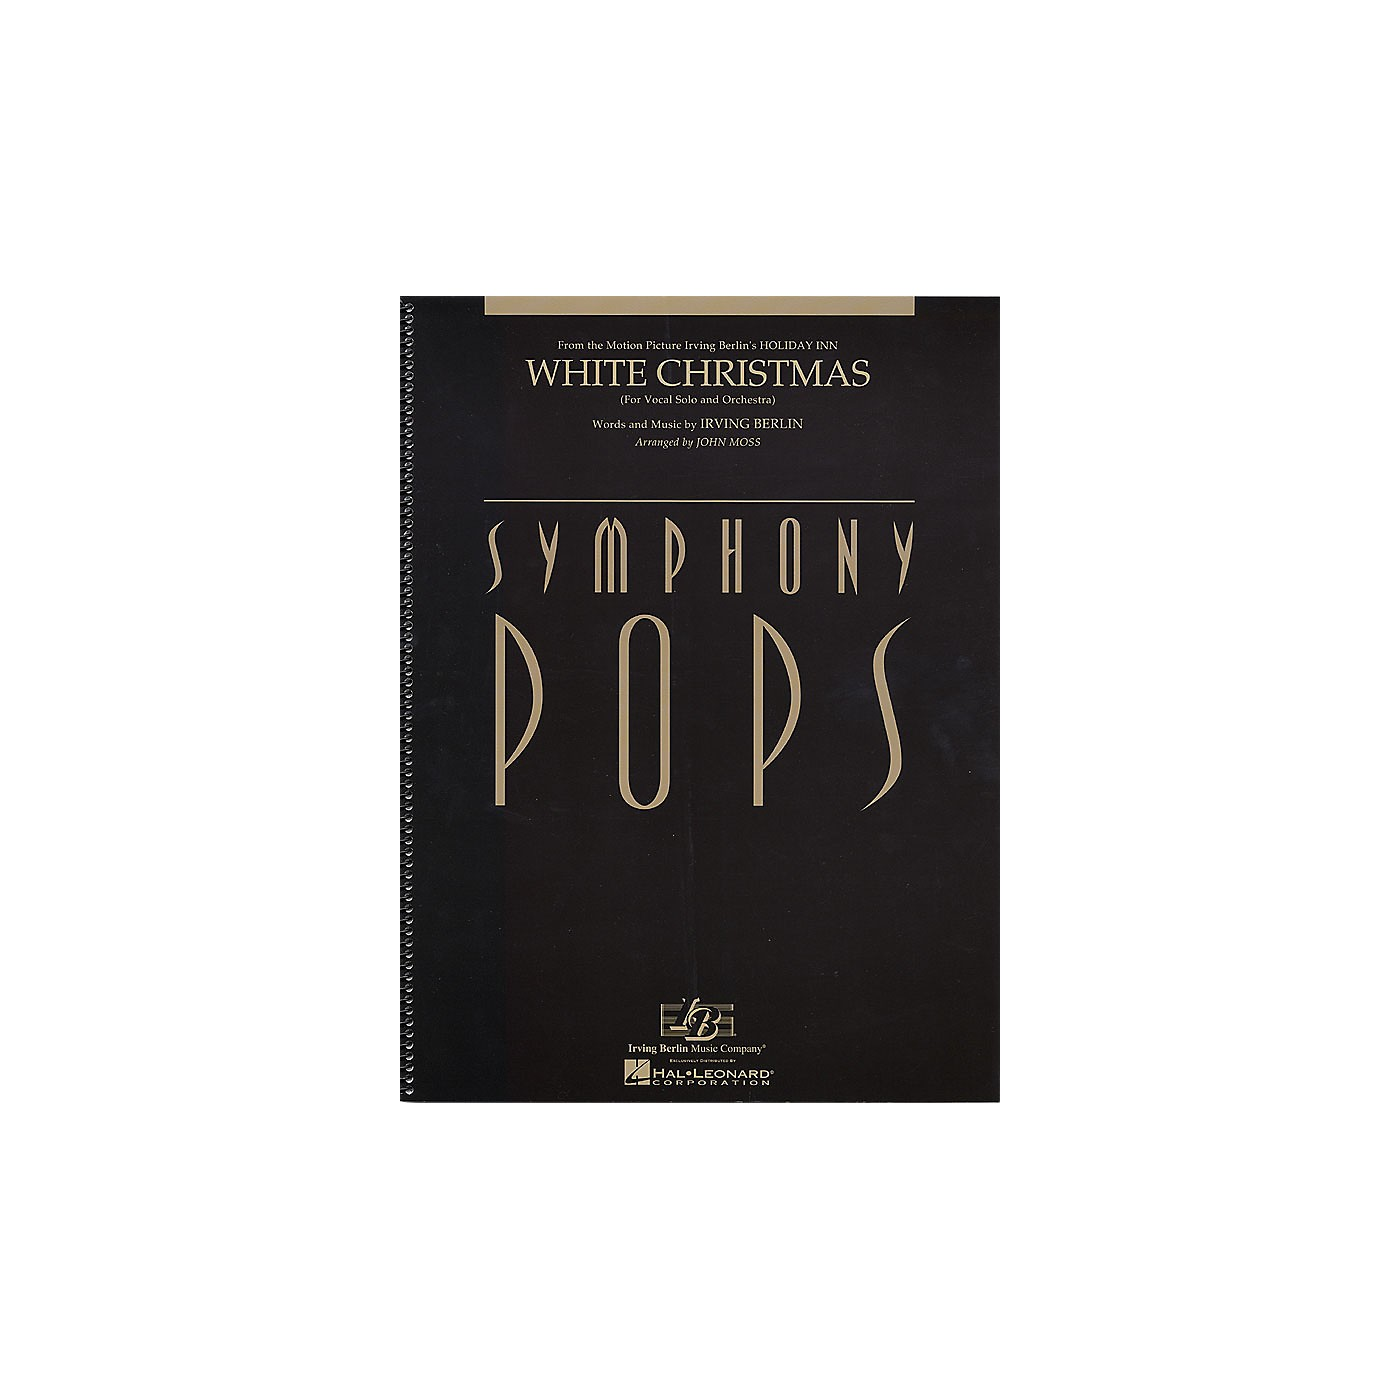 Hal Leonard White Christmas (Vocal Solo and Orchestra Deluxe Score) Symphony Pops Series Arranged by John Moss thumbnail